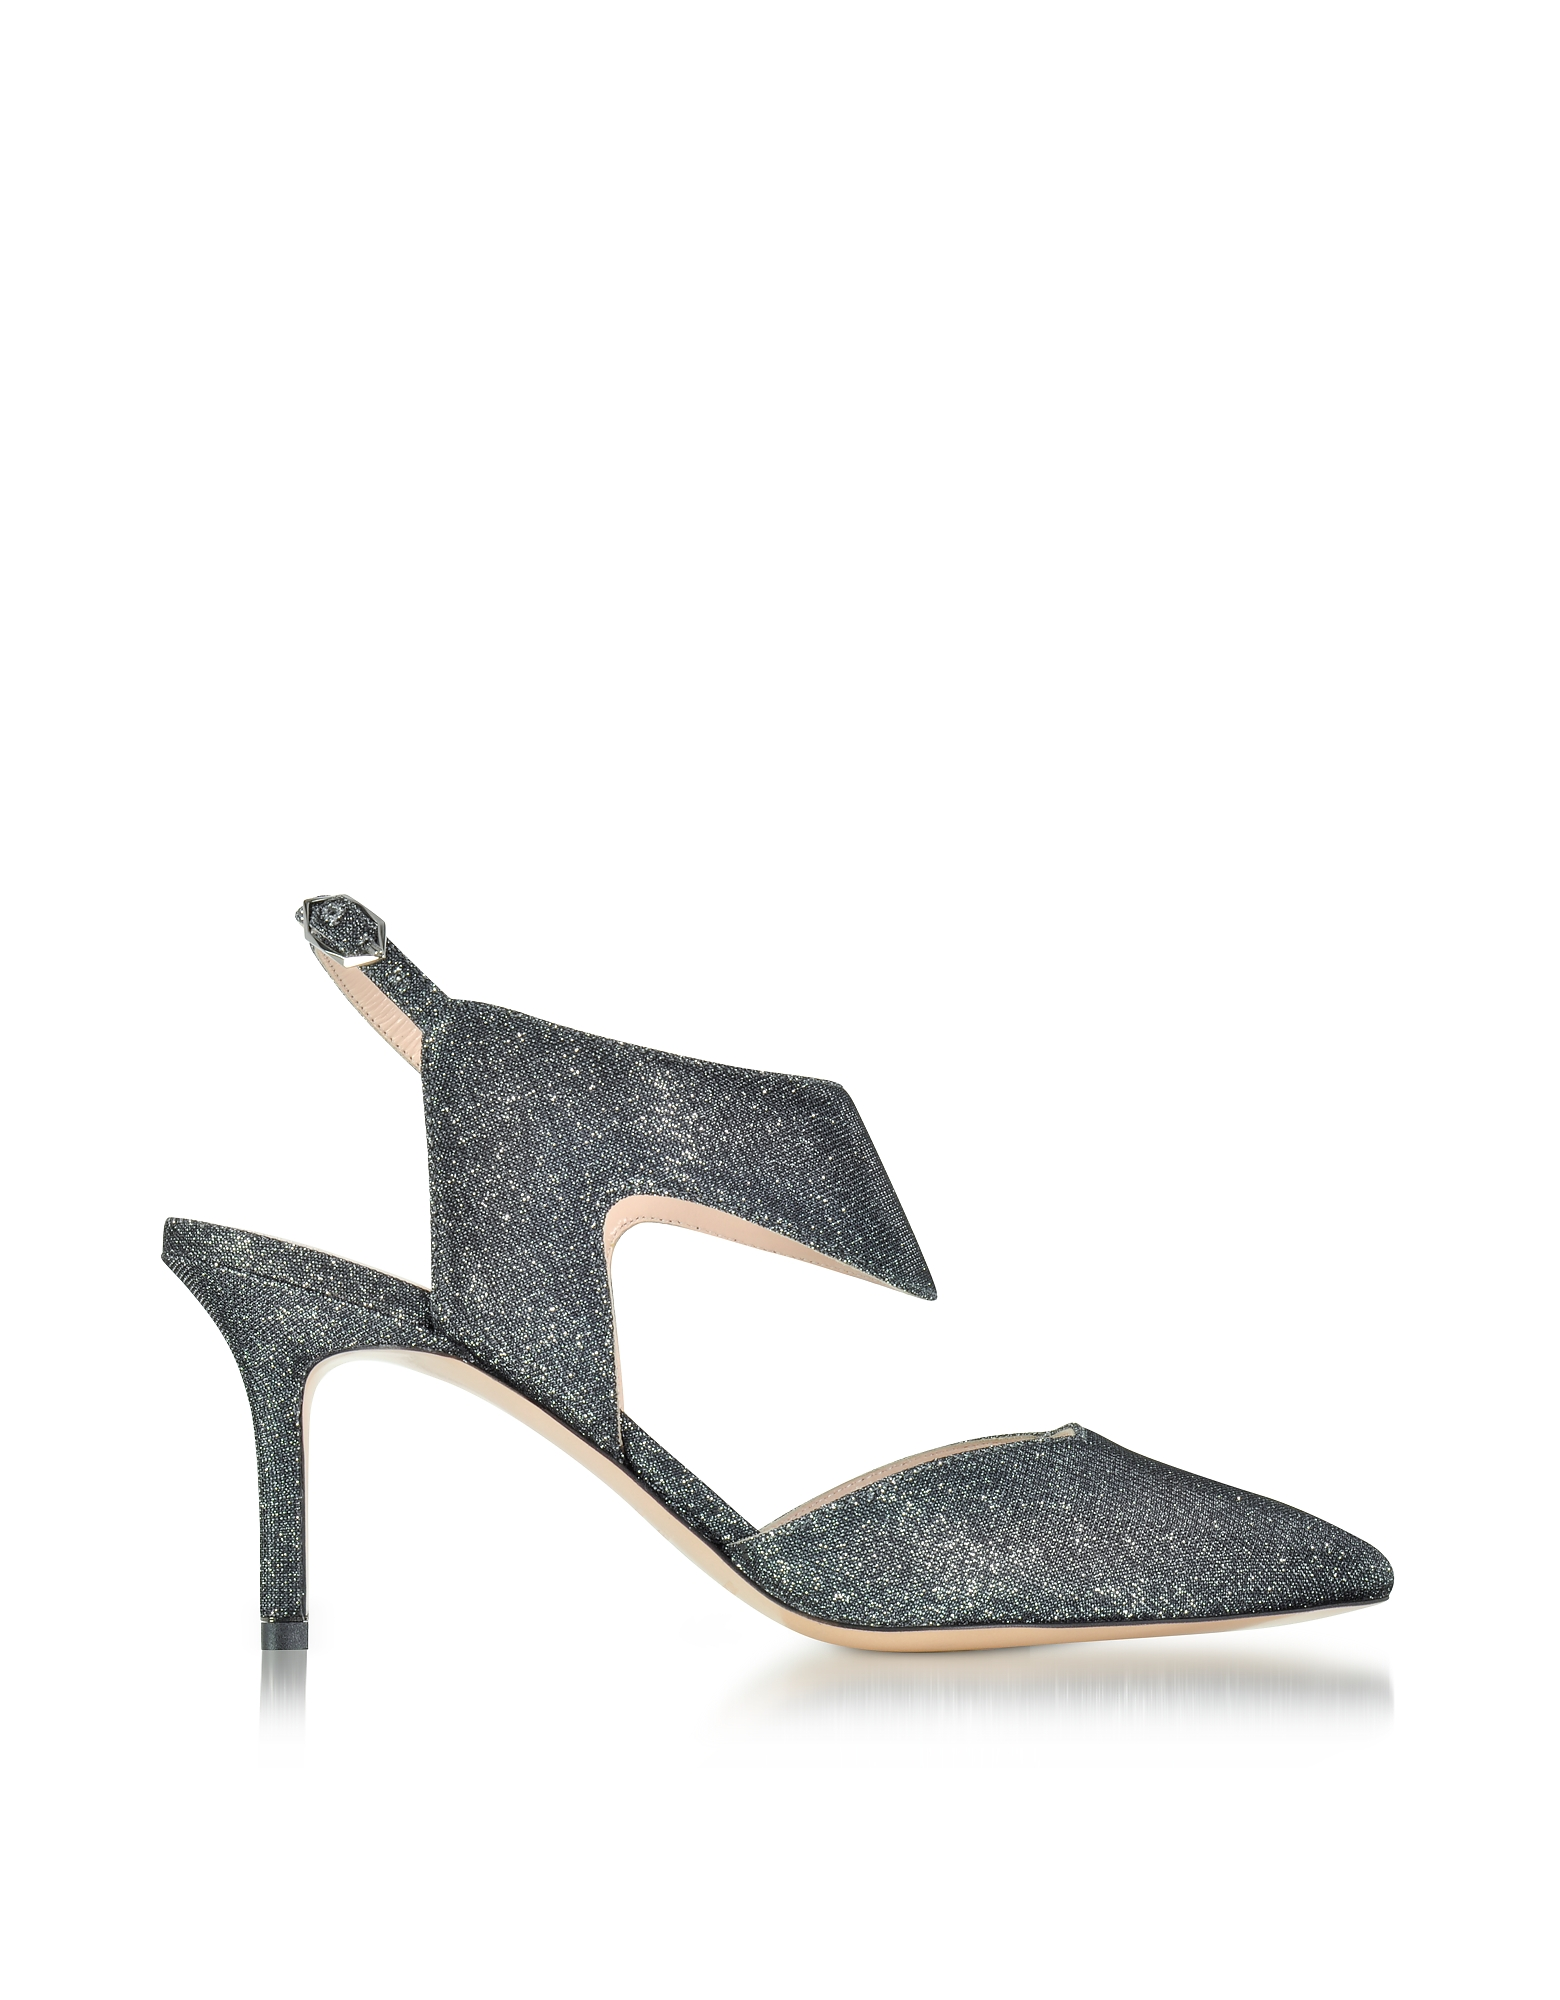 Nicholas Kirkwood Shoes, 70mm Gunmetal Fabric Leda Pump